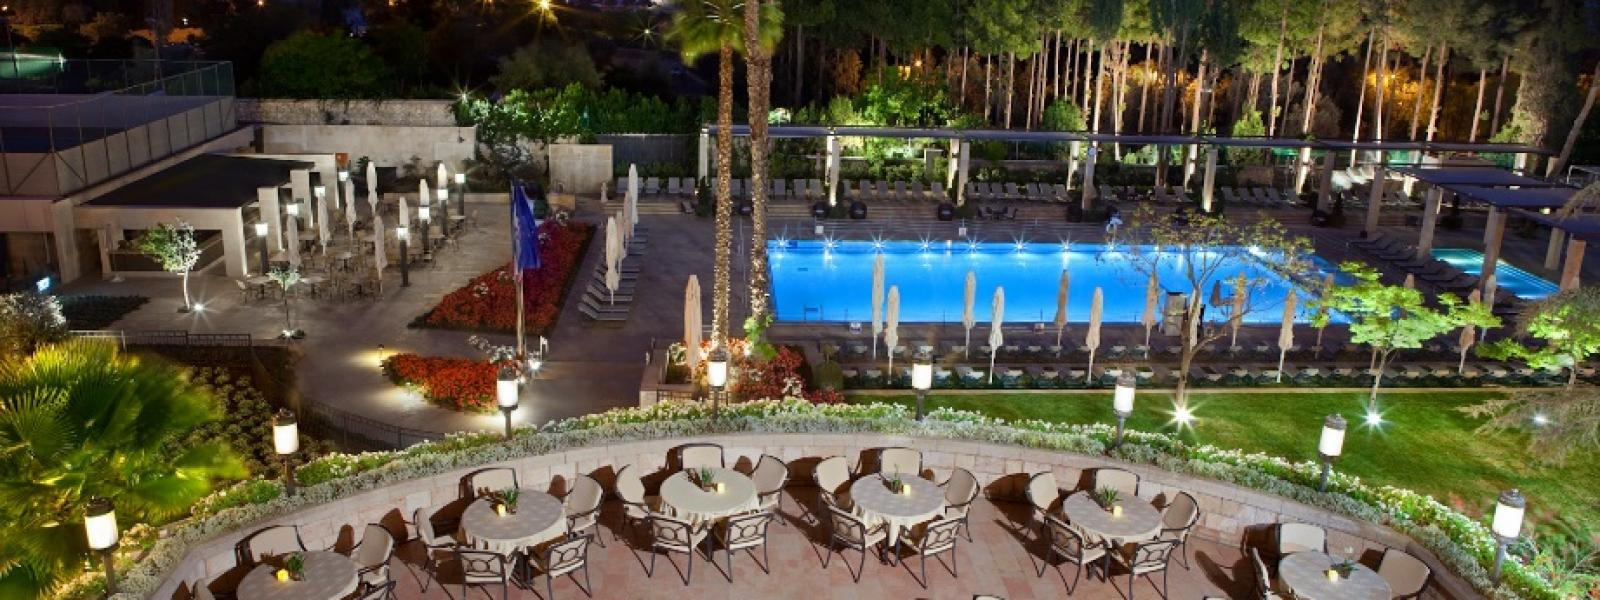 Hotel gardens and swimming pool picture